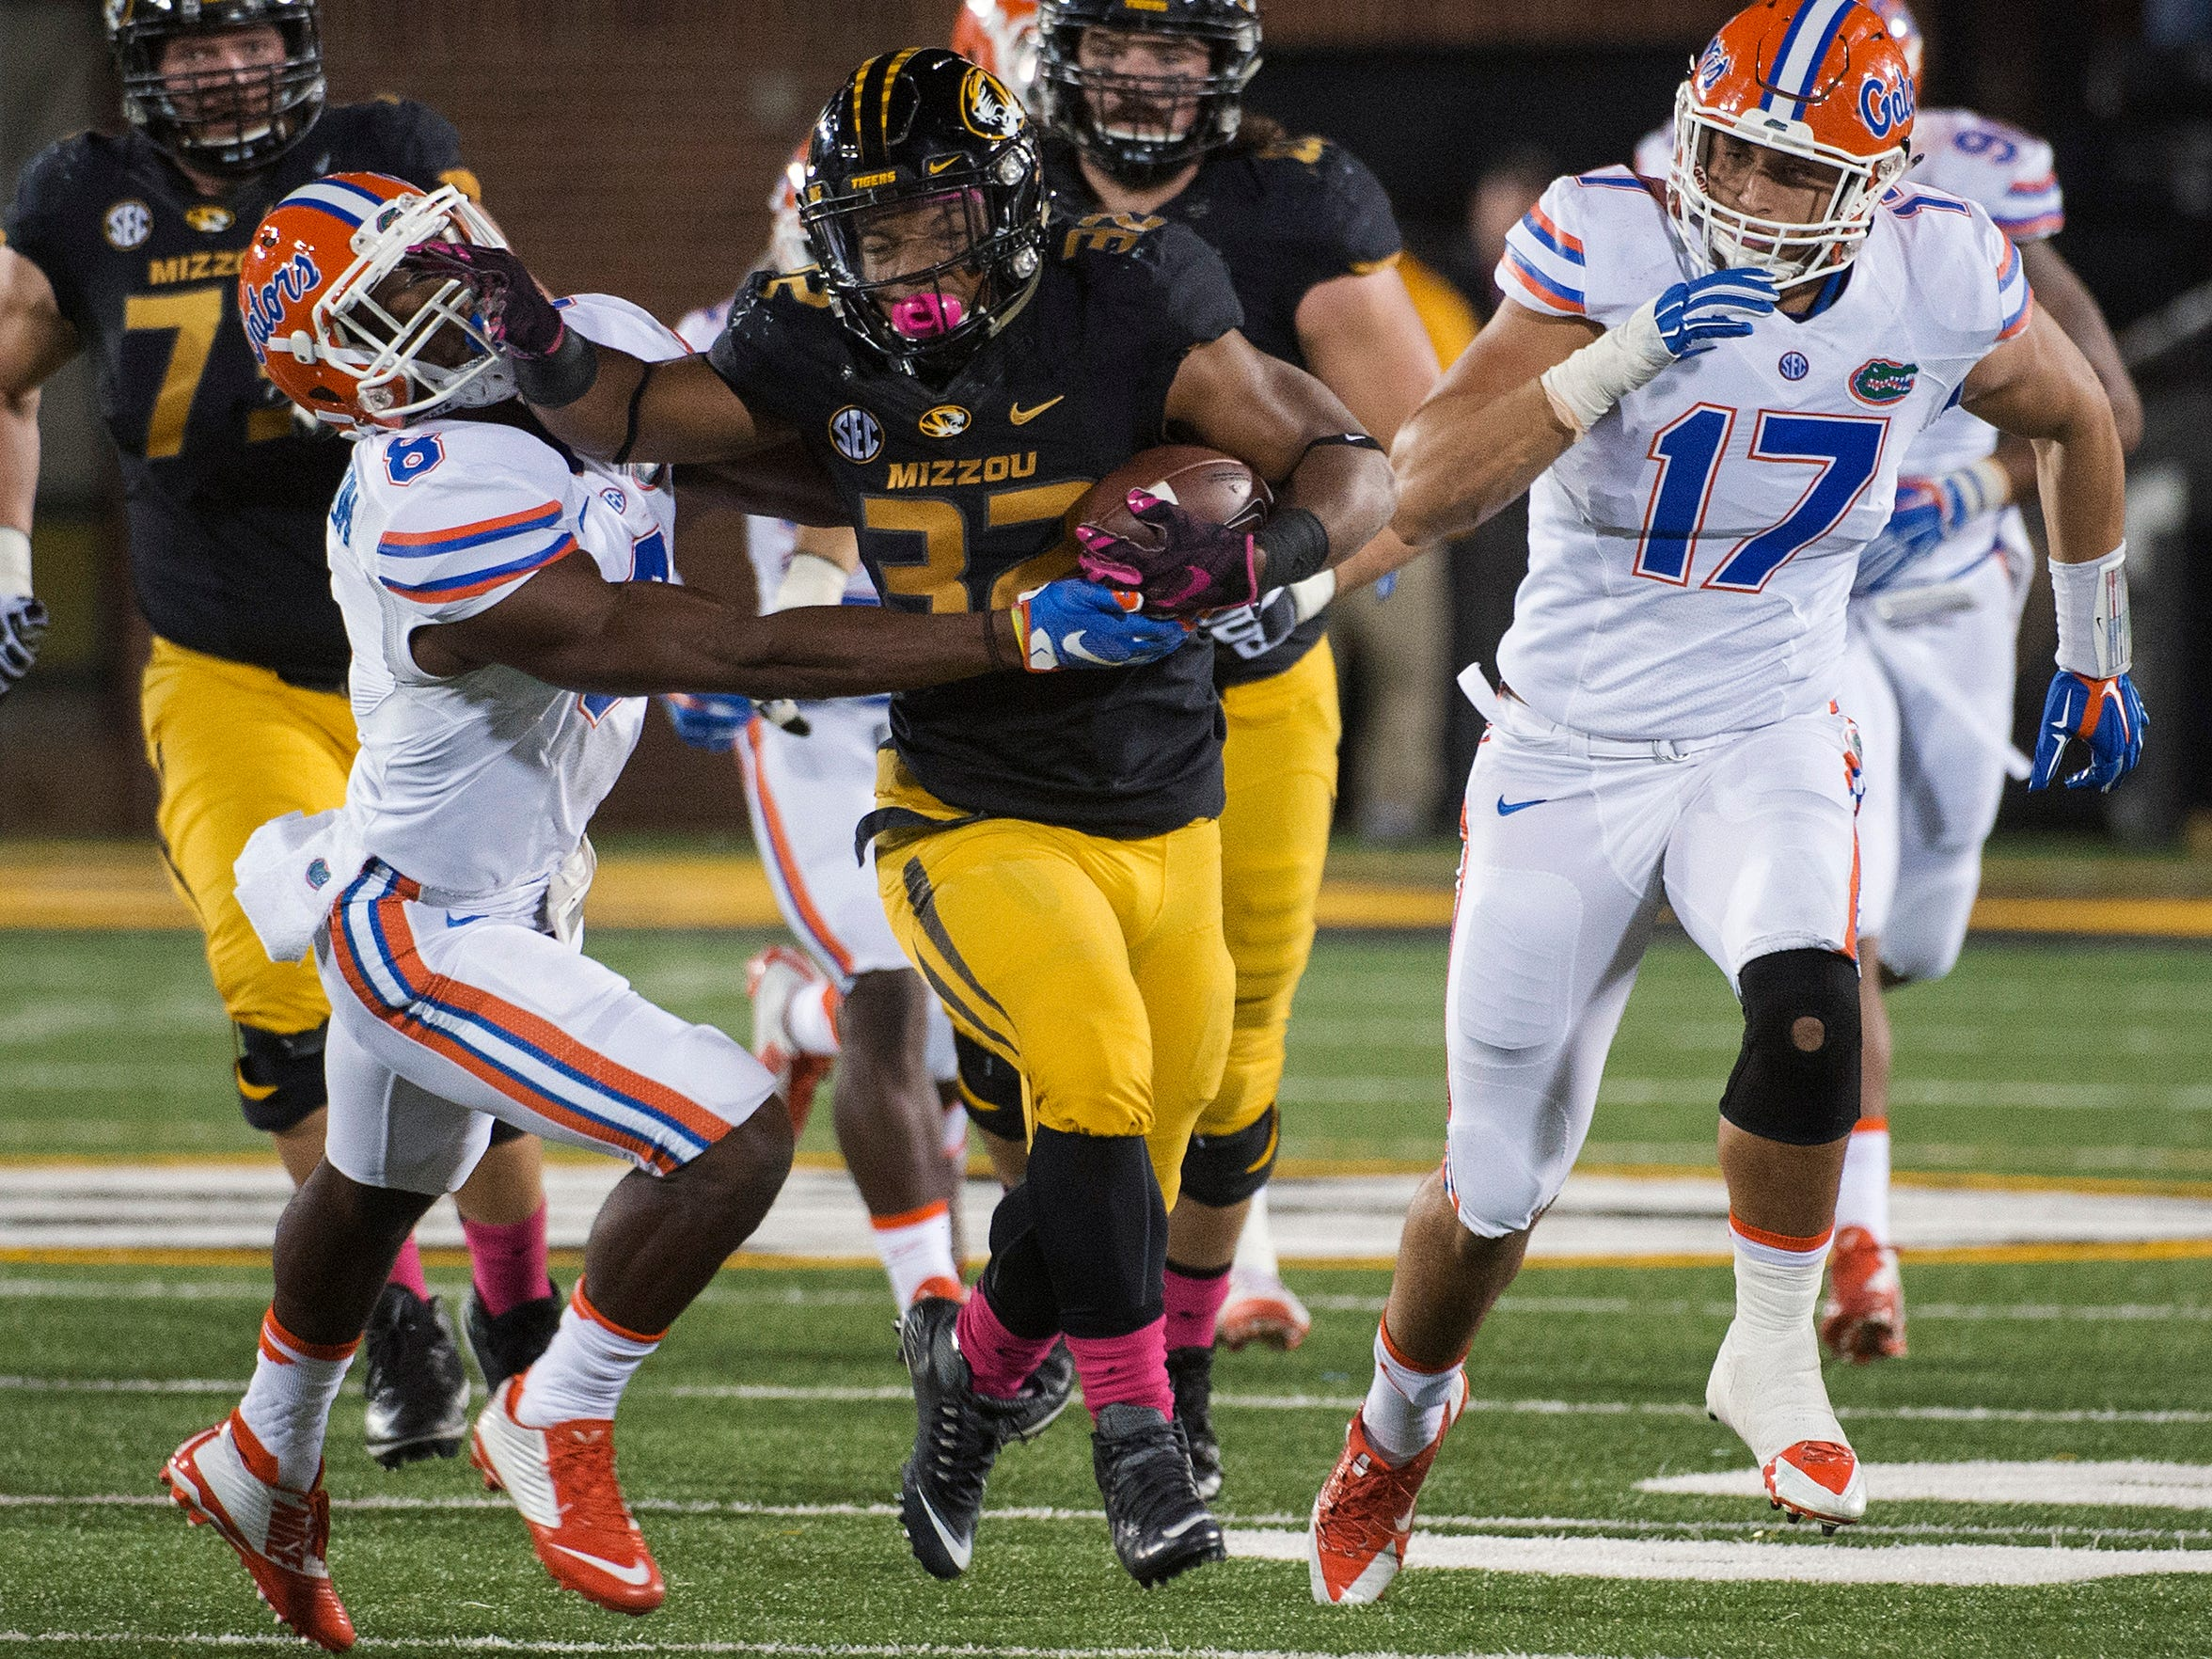 Missouri running back Russell Hansbrough, center, fights his way past Florida's Nick Washington, left, and Jordan Sherit, right, earlier this season. Some Missouri football players announced Saturday night that they will not participate in team activities until the university president, Tim Wolfe, is removed from office. The statement from the athletes of color was tweeted out Saturday by several members of the football team, including Hansbrough.